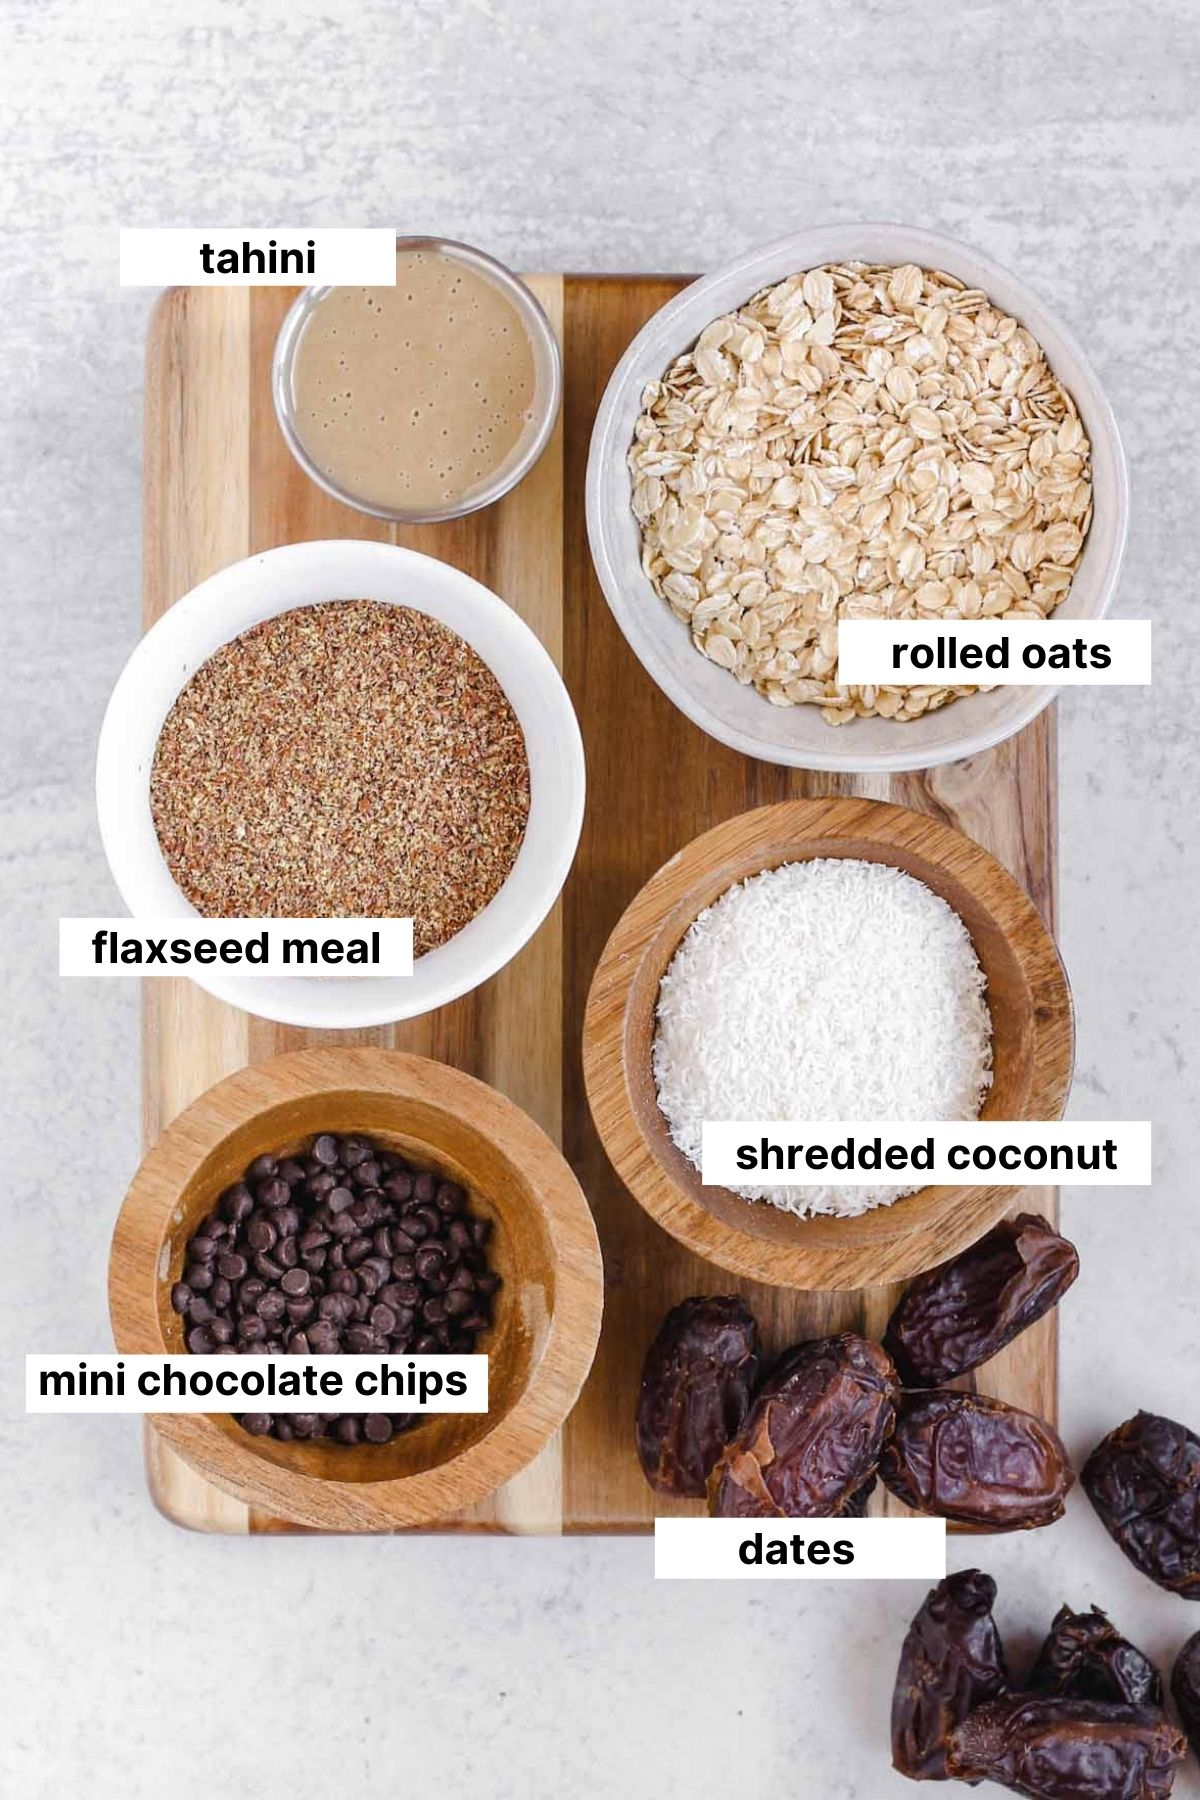 labeled ingredients used for recipe